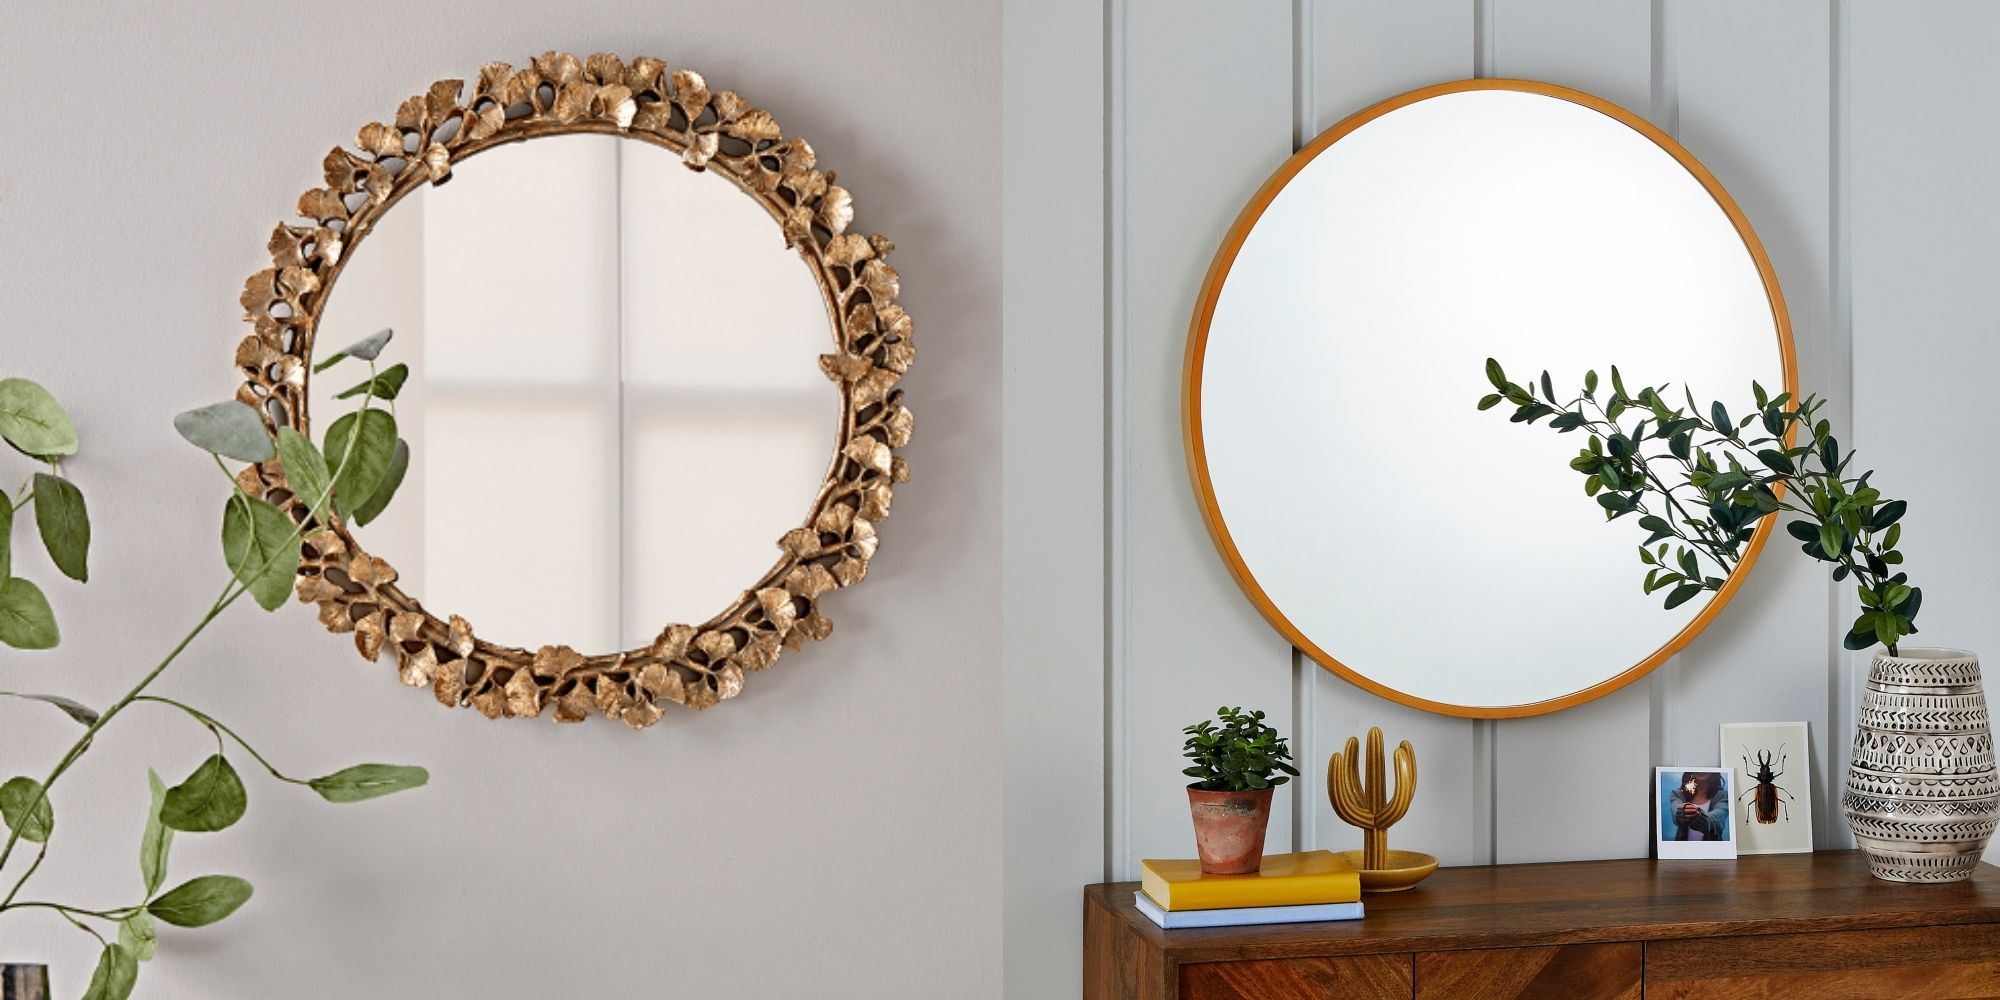 7 Statement Round Wall Mirrors To Buy For Your Home For Wall Mirrors (Image 2 of 20)